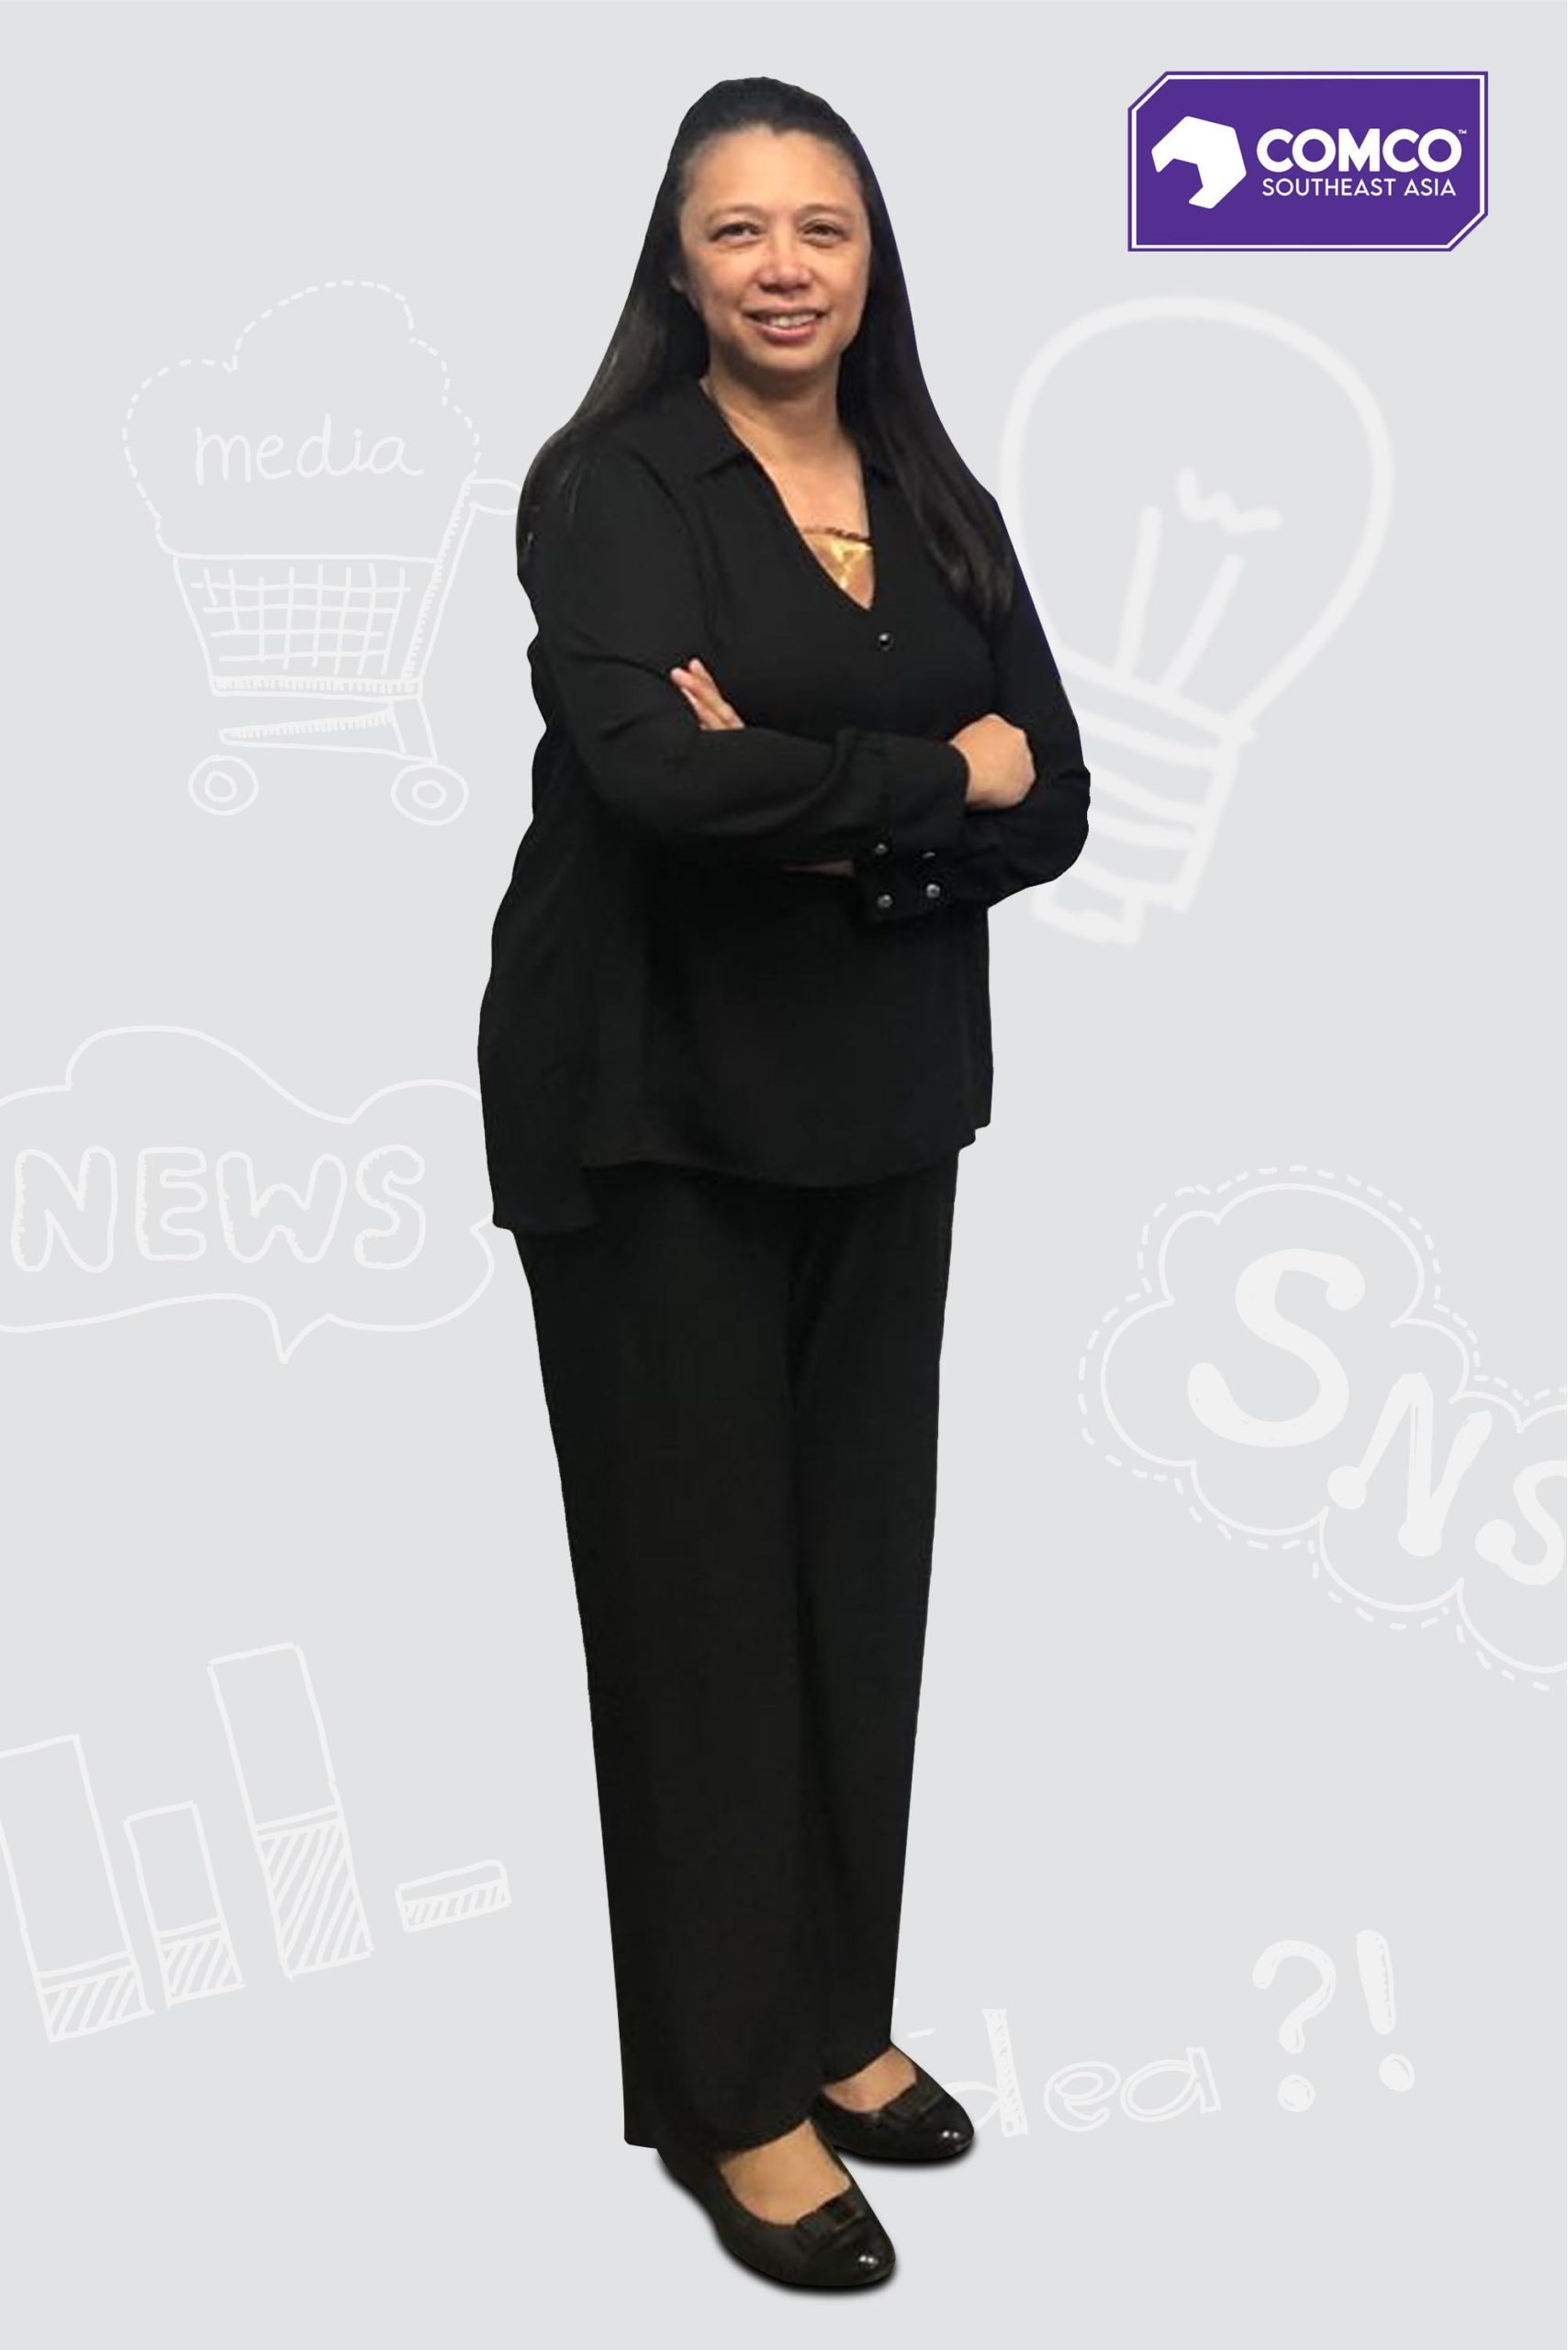 Mary Jane Ibay, CPA